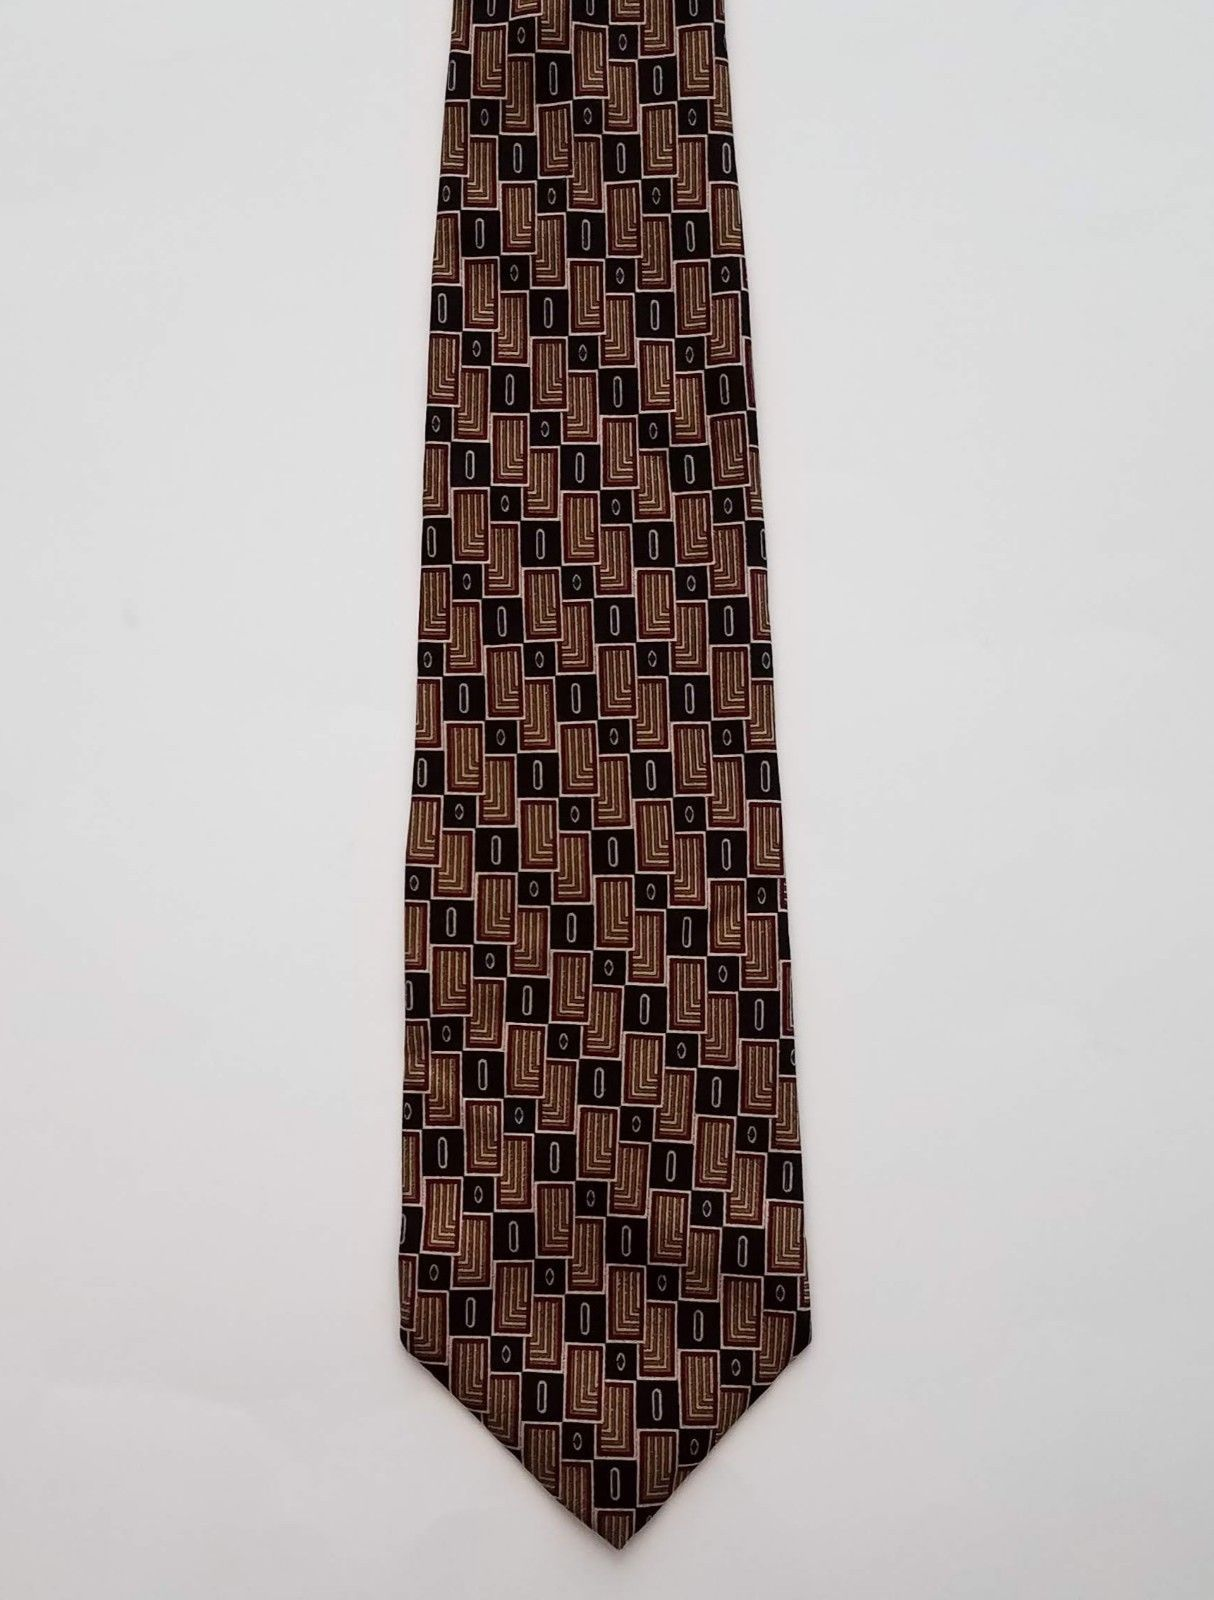 Primary image for Geoffrey Beene Classic 100% Silk Gold Black & Red Geometric Print Men's Neck Tie